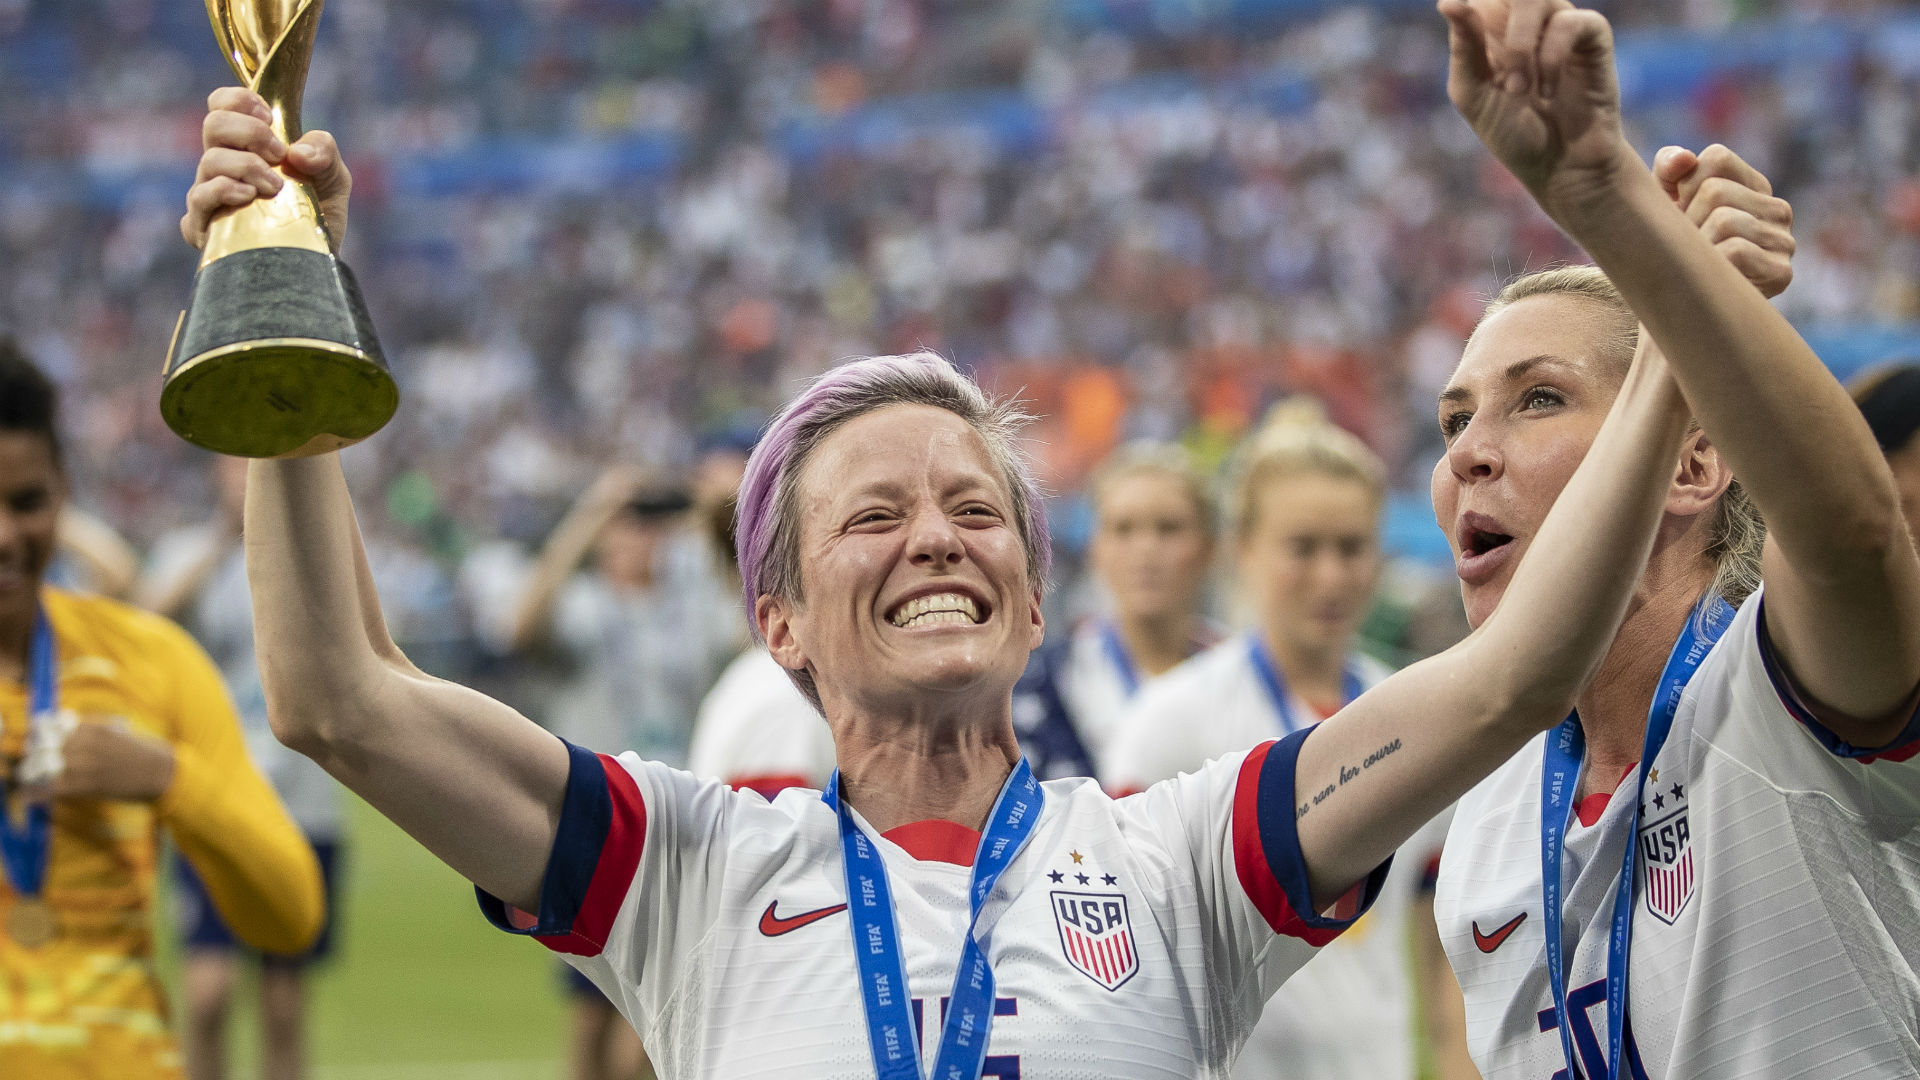 WNBA star Sue Bird says Megan Rapinoe 'went out there and balled out' in World Cup